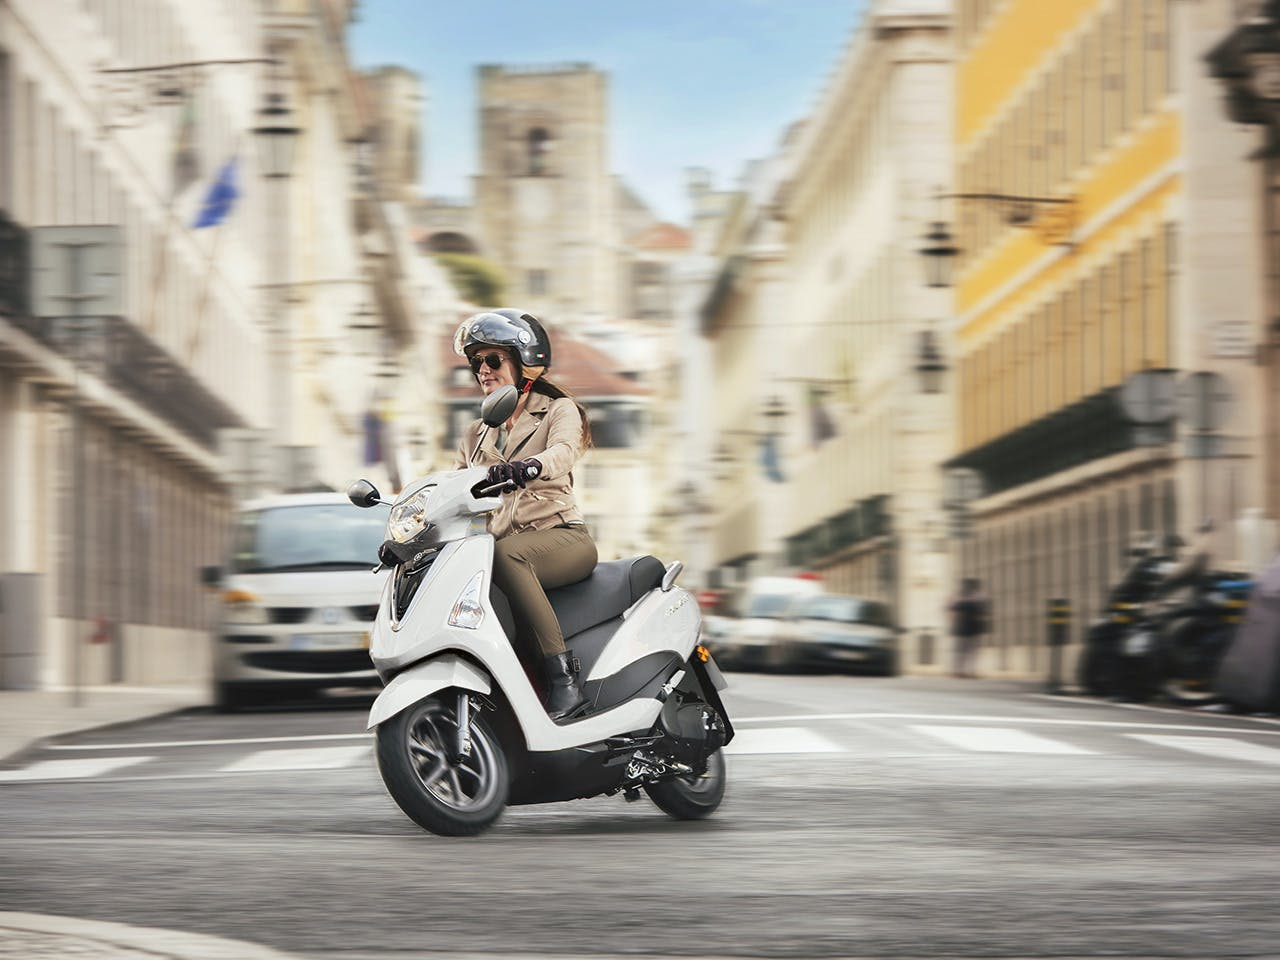 YAMAHA D'ELIGHT 125 in Milky White colour on the road